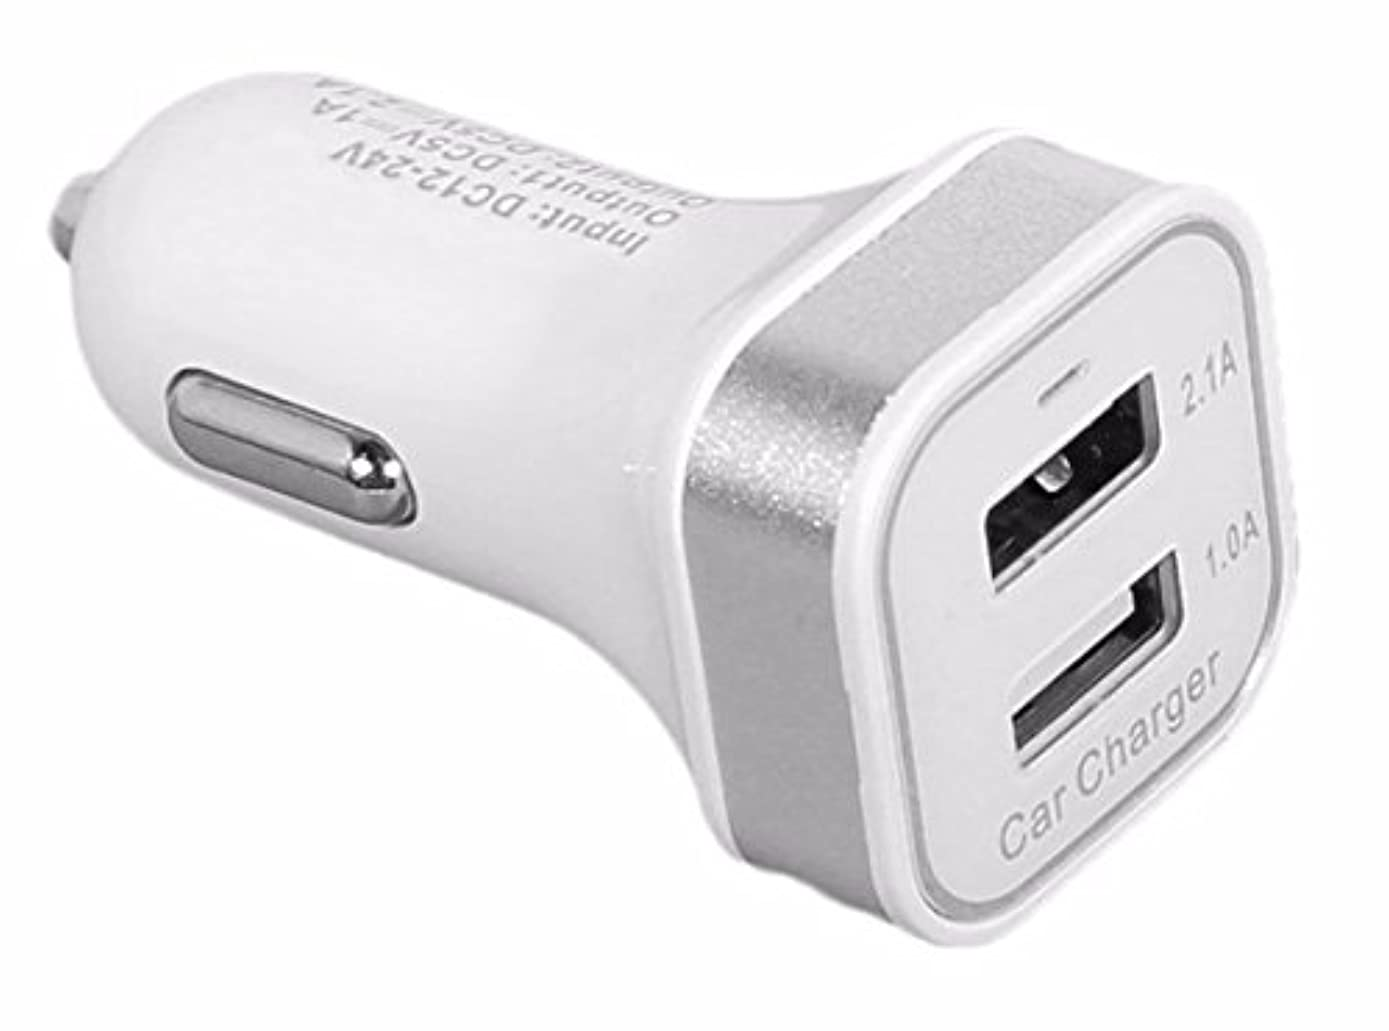 ReadyPlug USB Car Charger for: Hubsan X4 H107C+ Camera Drone (White - Glows Blue)